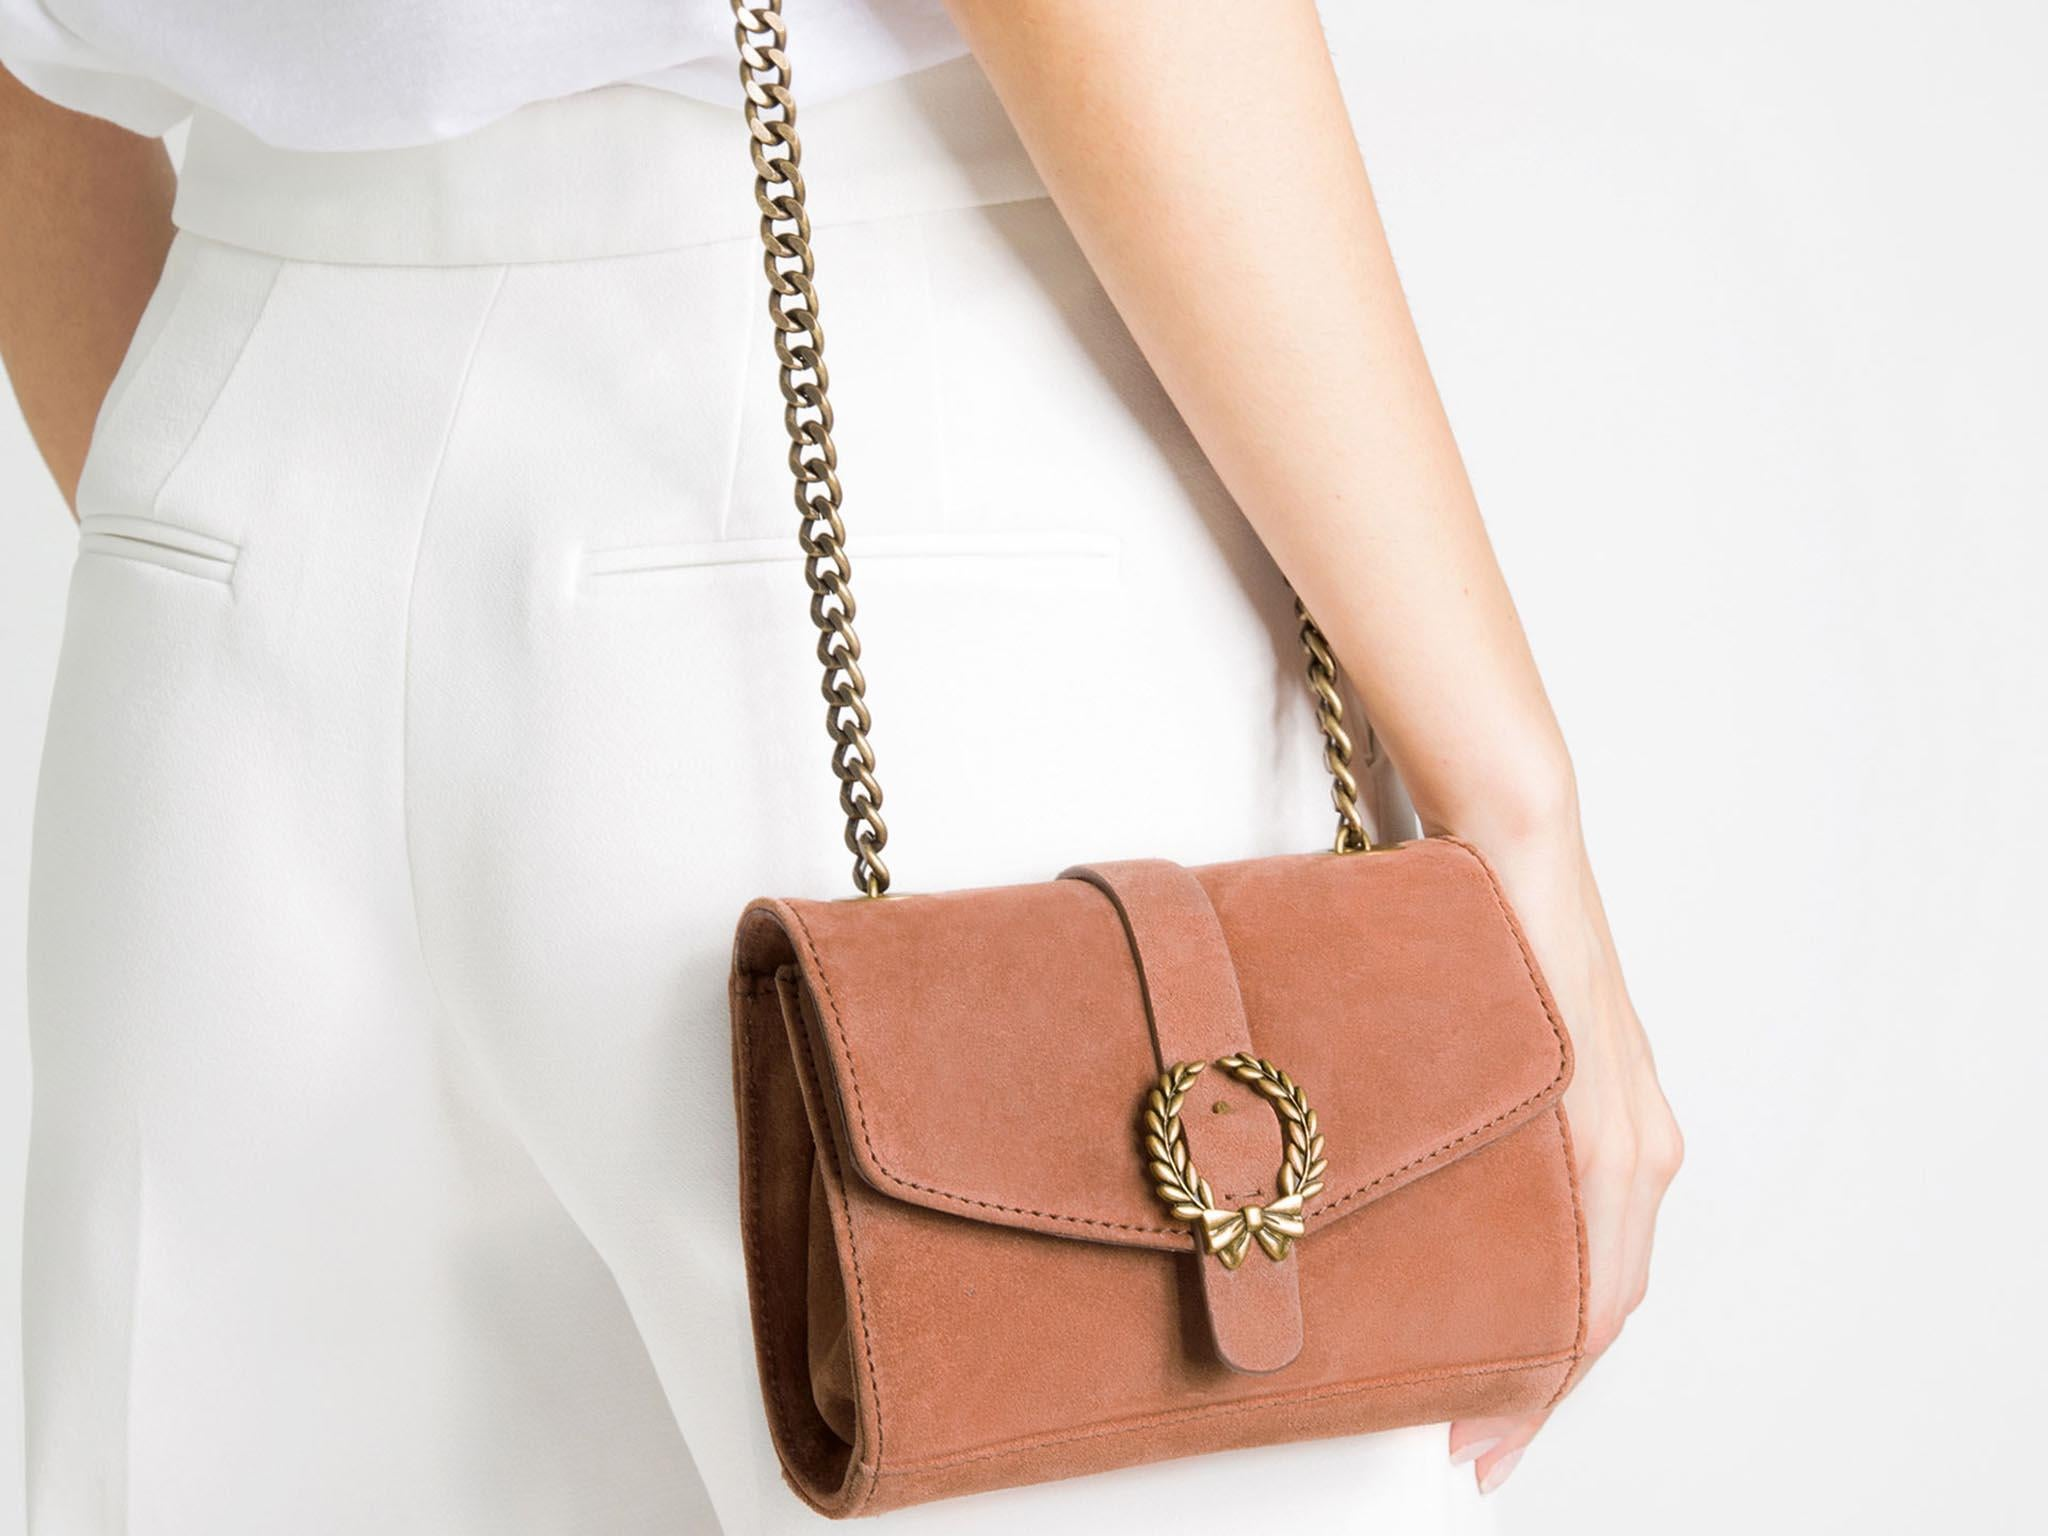 Mini handbags for a mini price  13 tiny bags for under £30 6dbbe0a305ab2